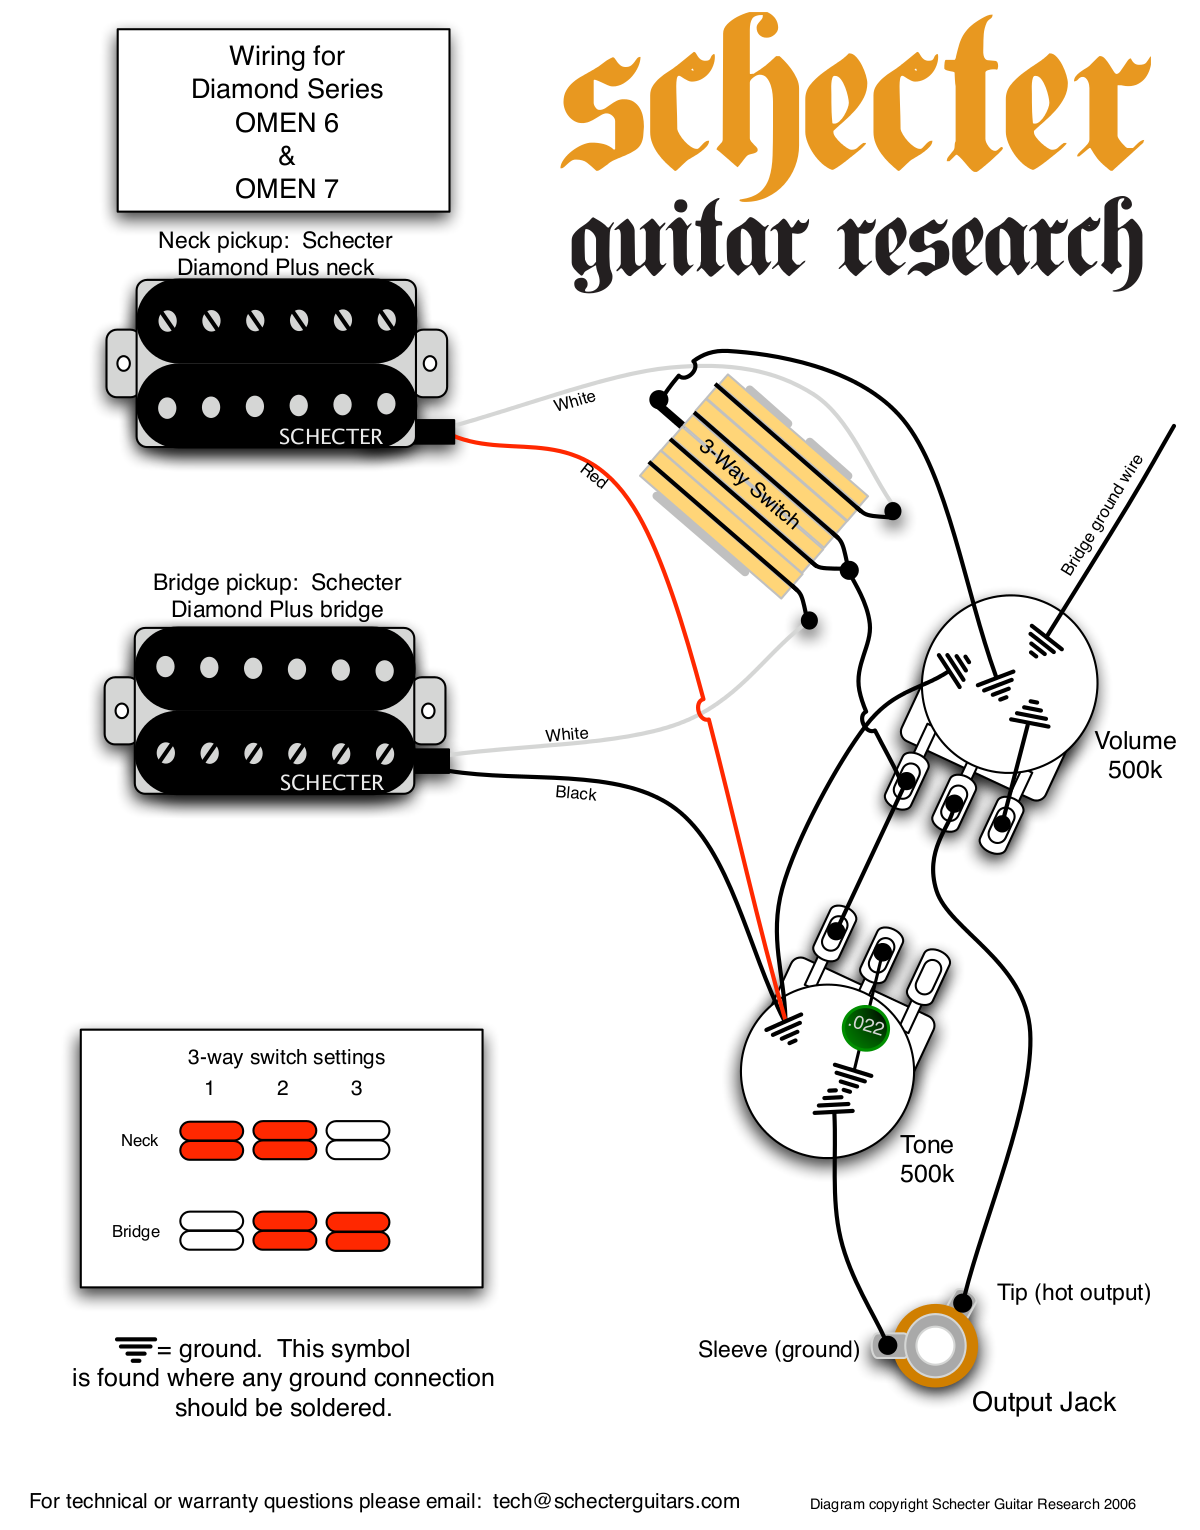 schecter_omen6_and omen7.pdf 0 download free pdf for schecter omen extreme 6 guitar manual Schecter Diamond Series Wiring Diagram at gsmportal.co